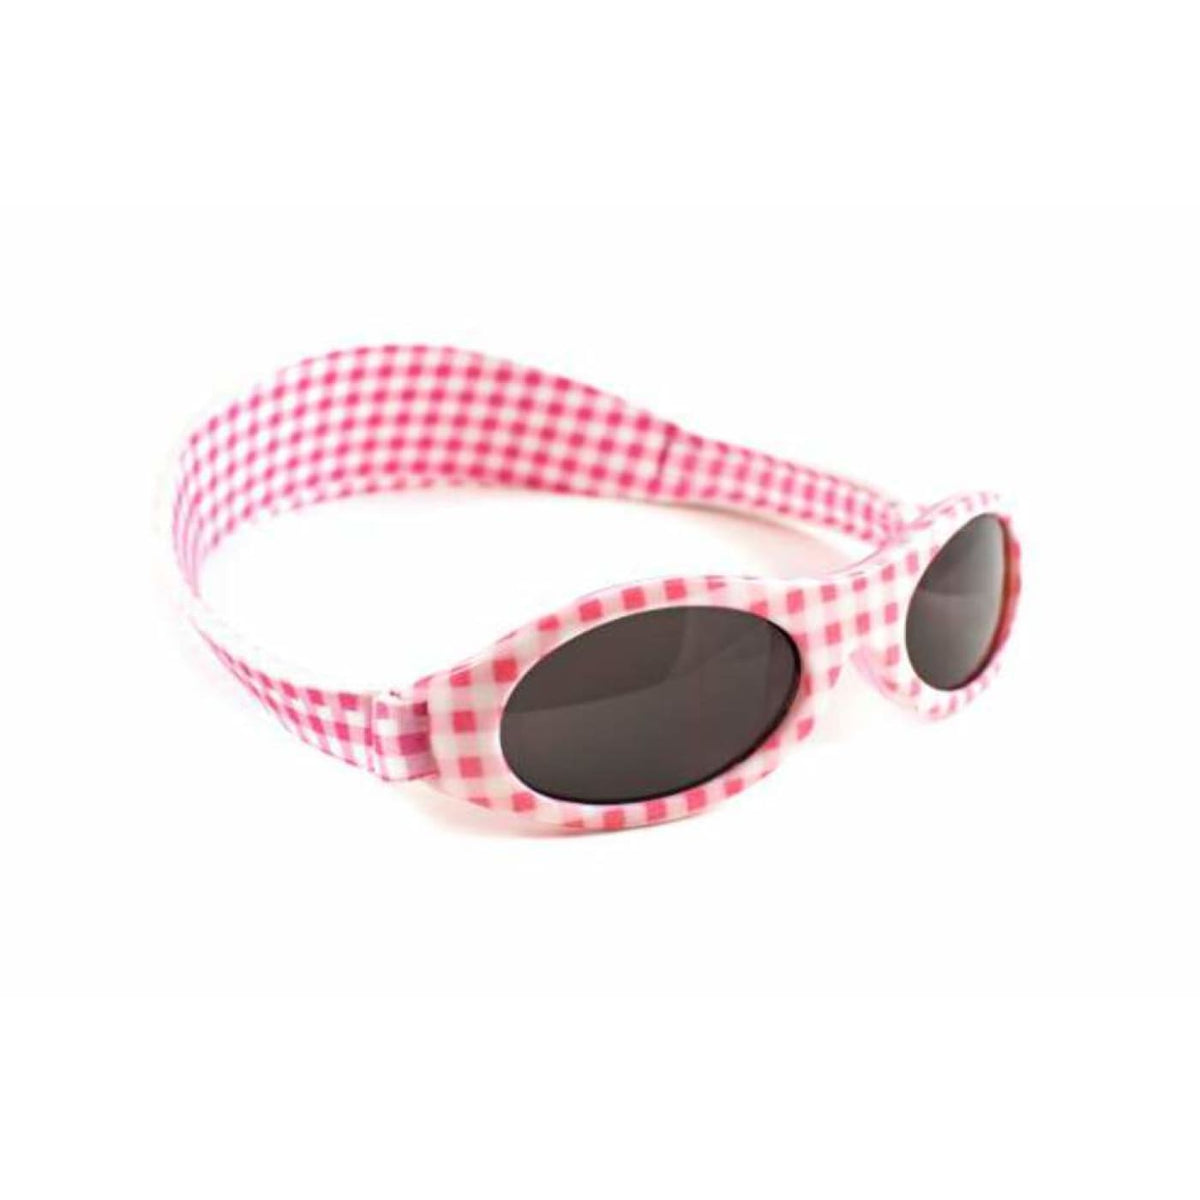 Baby Banz Adventure Sunglasses Baby - Pink Check - BABY & TODDLER CLOTHING - SUNGLASSES/EAR MUFFS